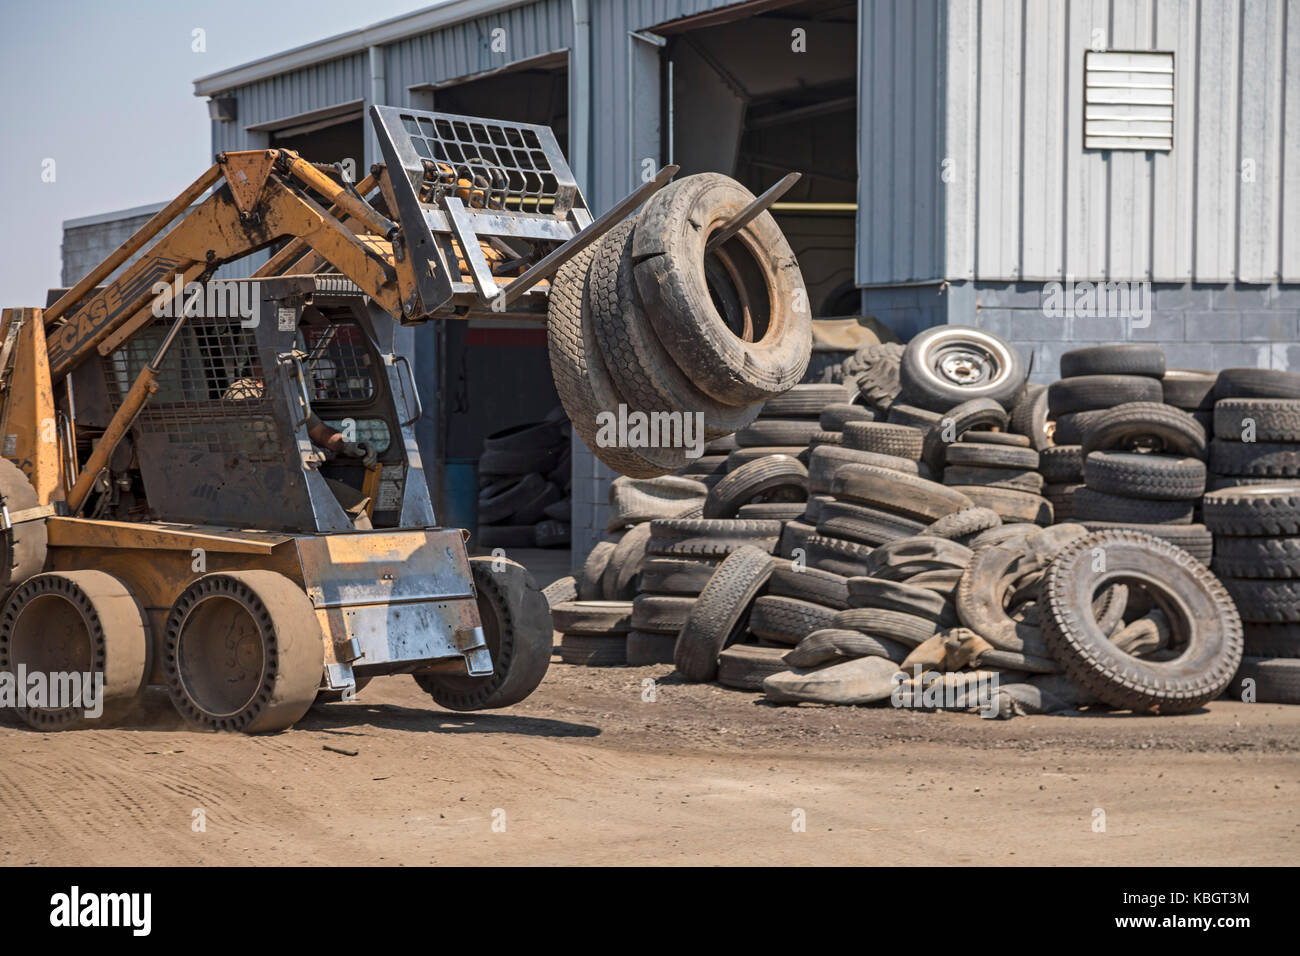 Denver, Colorado - Used tires at Colorado Tire Recycling. - Stock Image